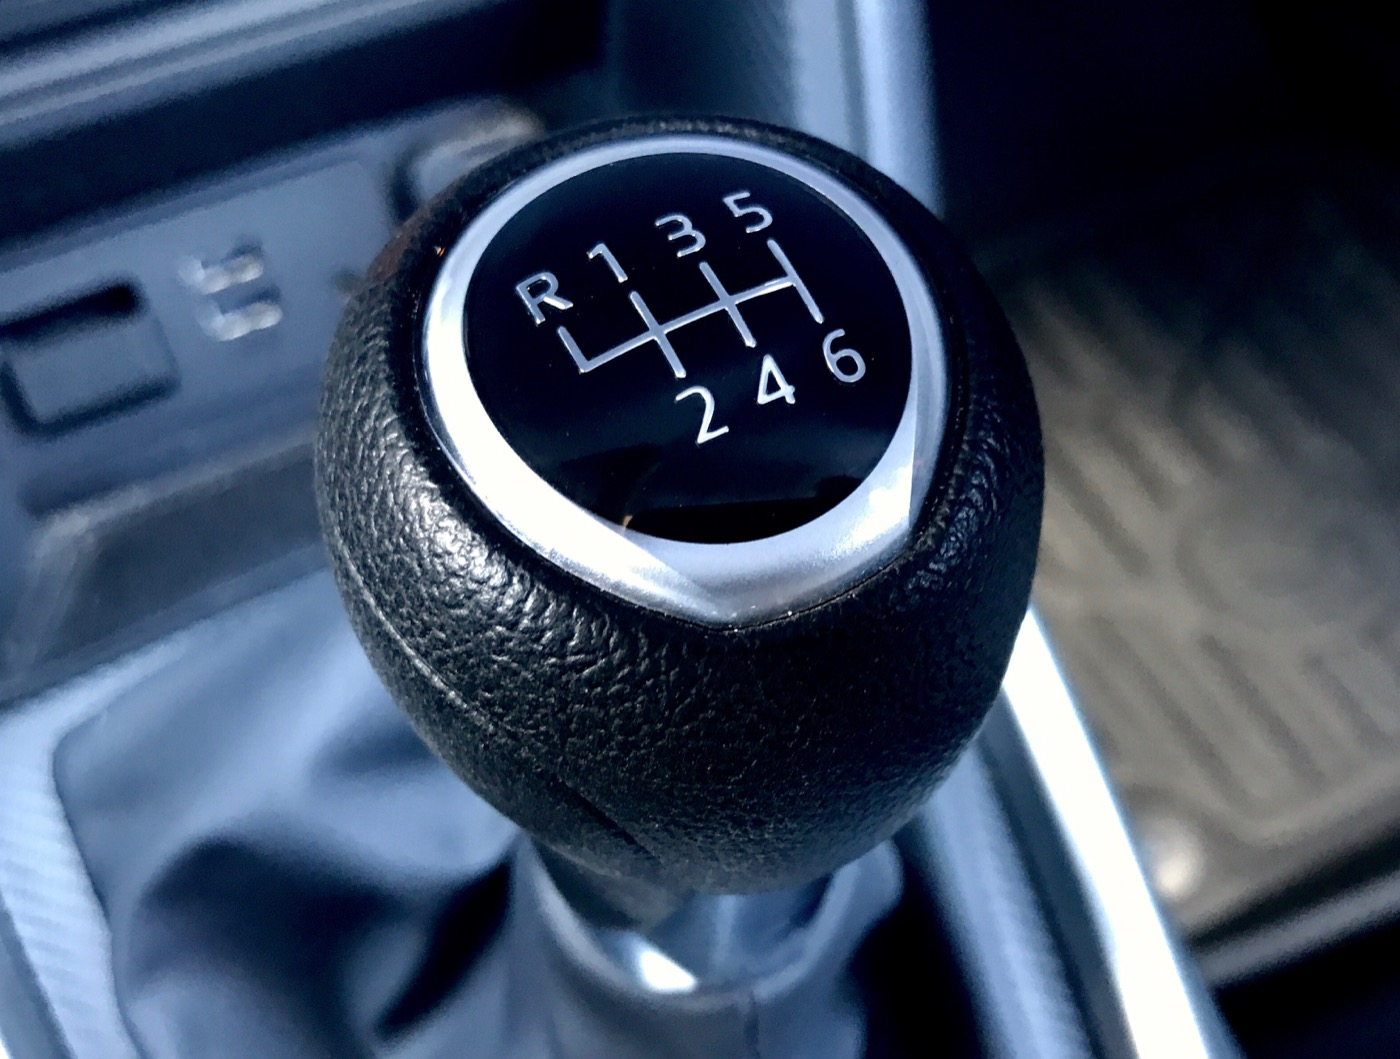 mazda 3 manual shift mode